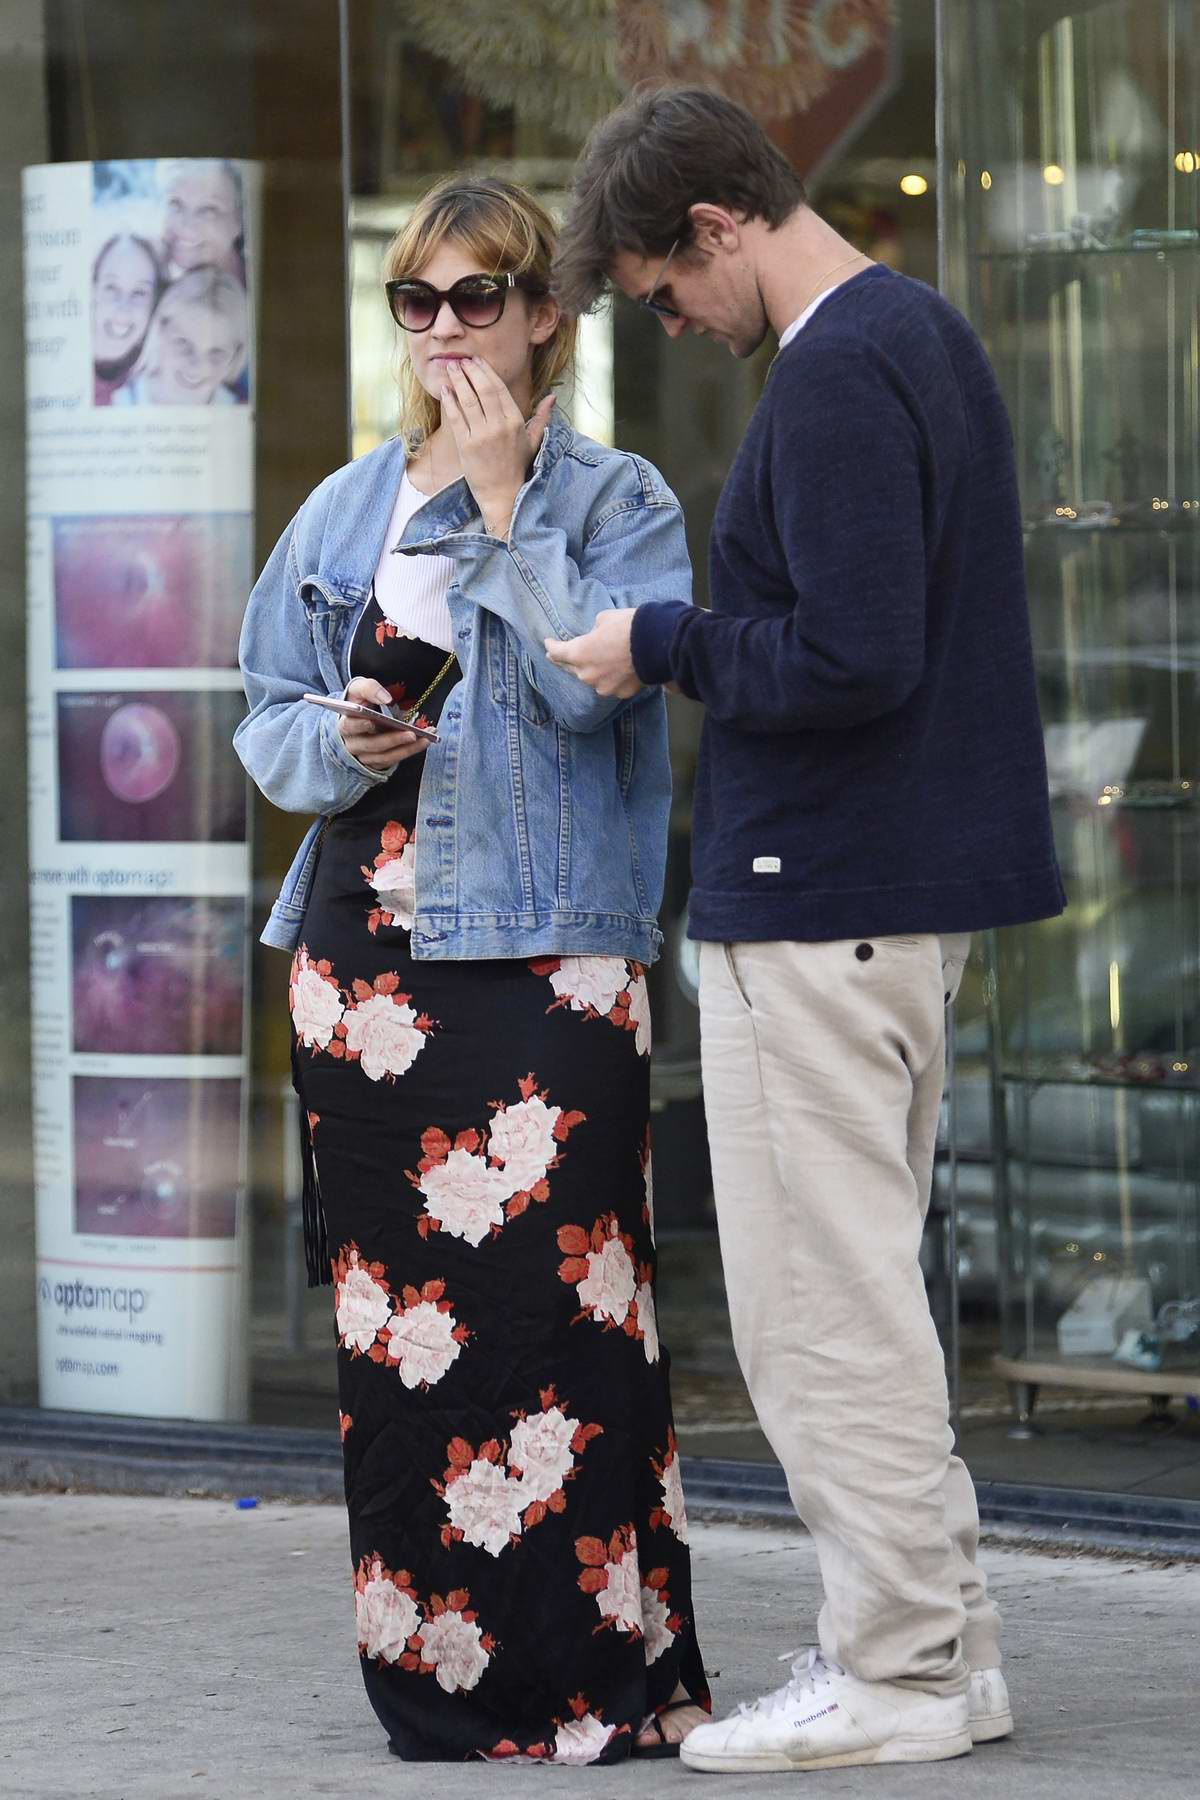 Lily James wore a maxi dress and denim jacket while out with beau Matt Smith as they enjoy a walk in Los Angeles